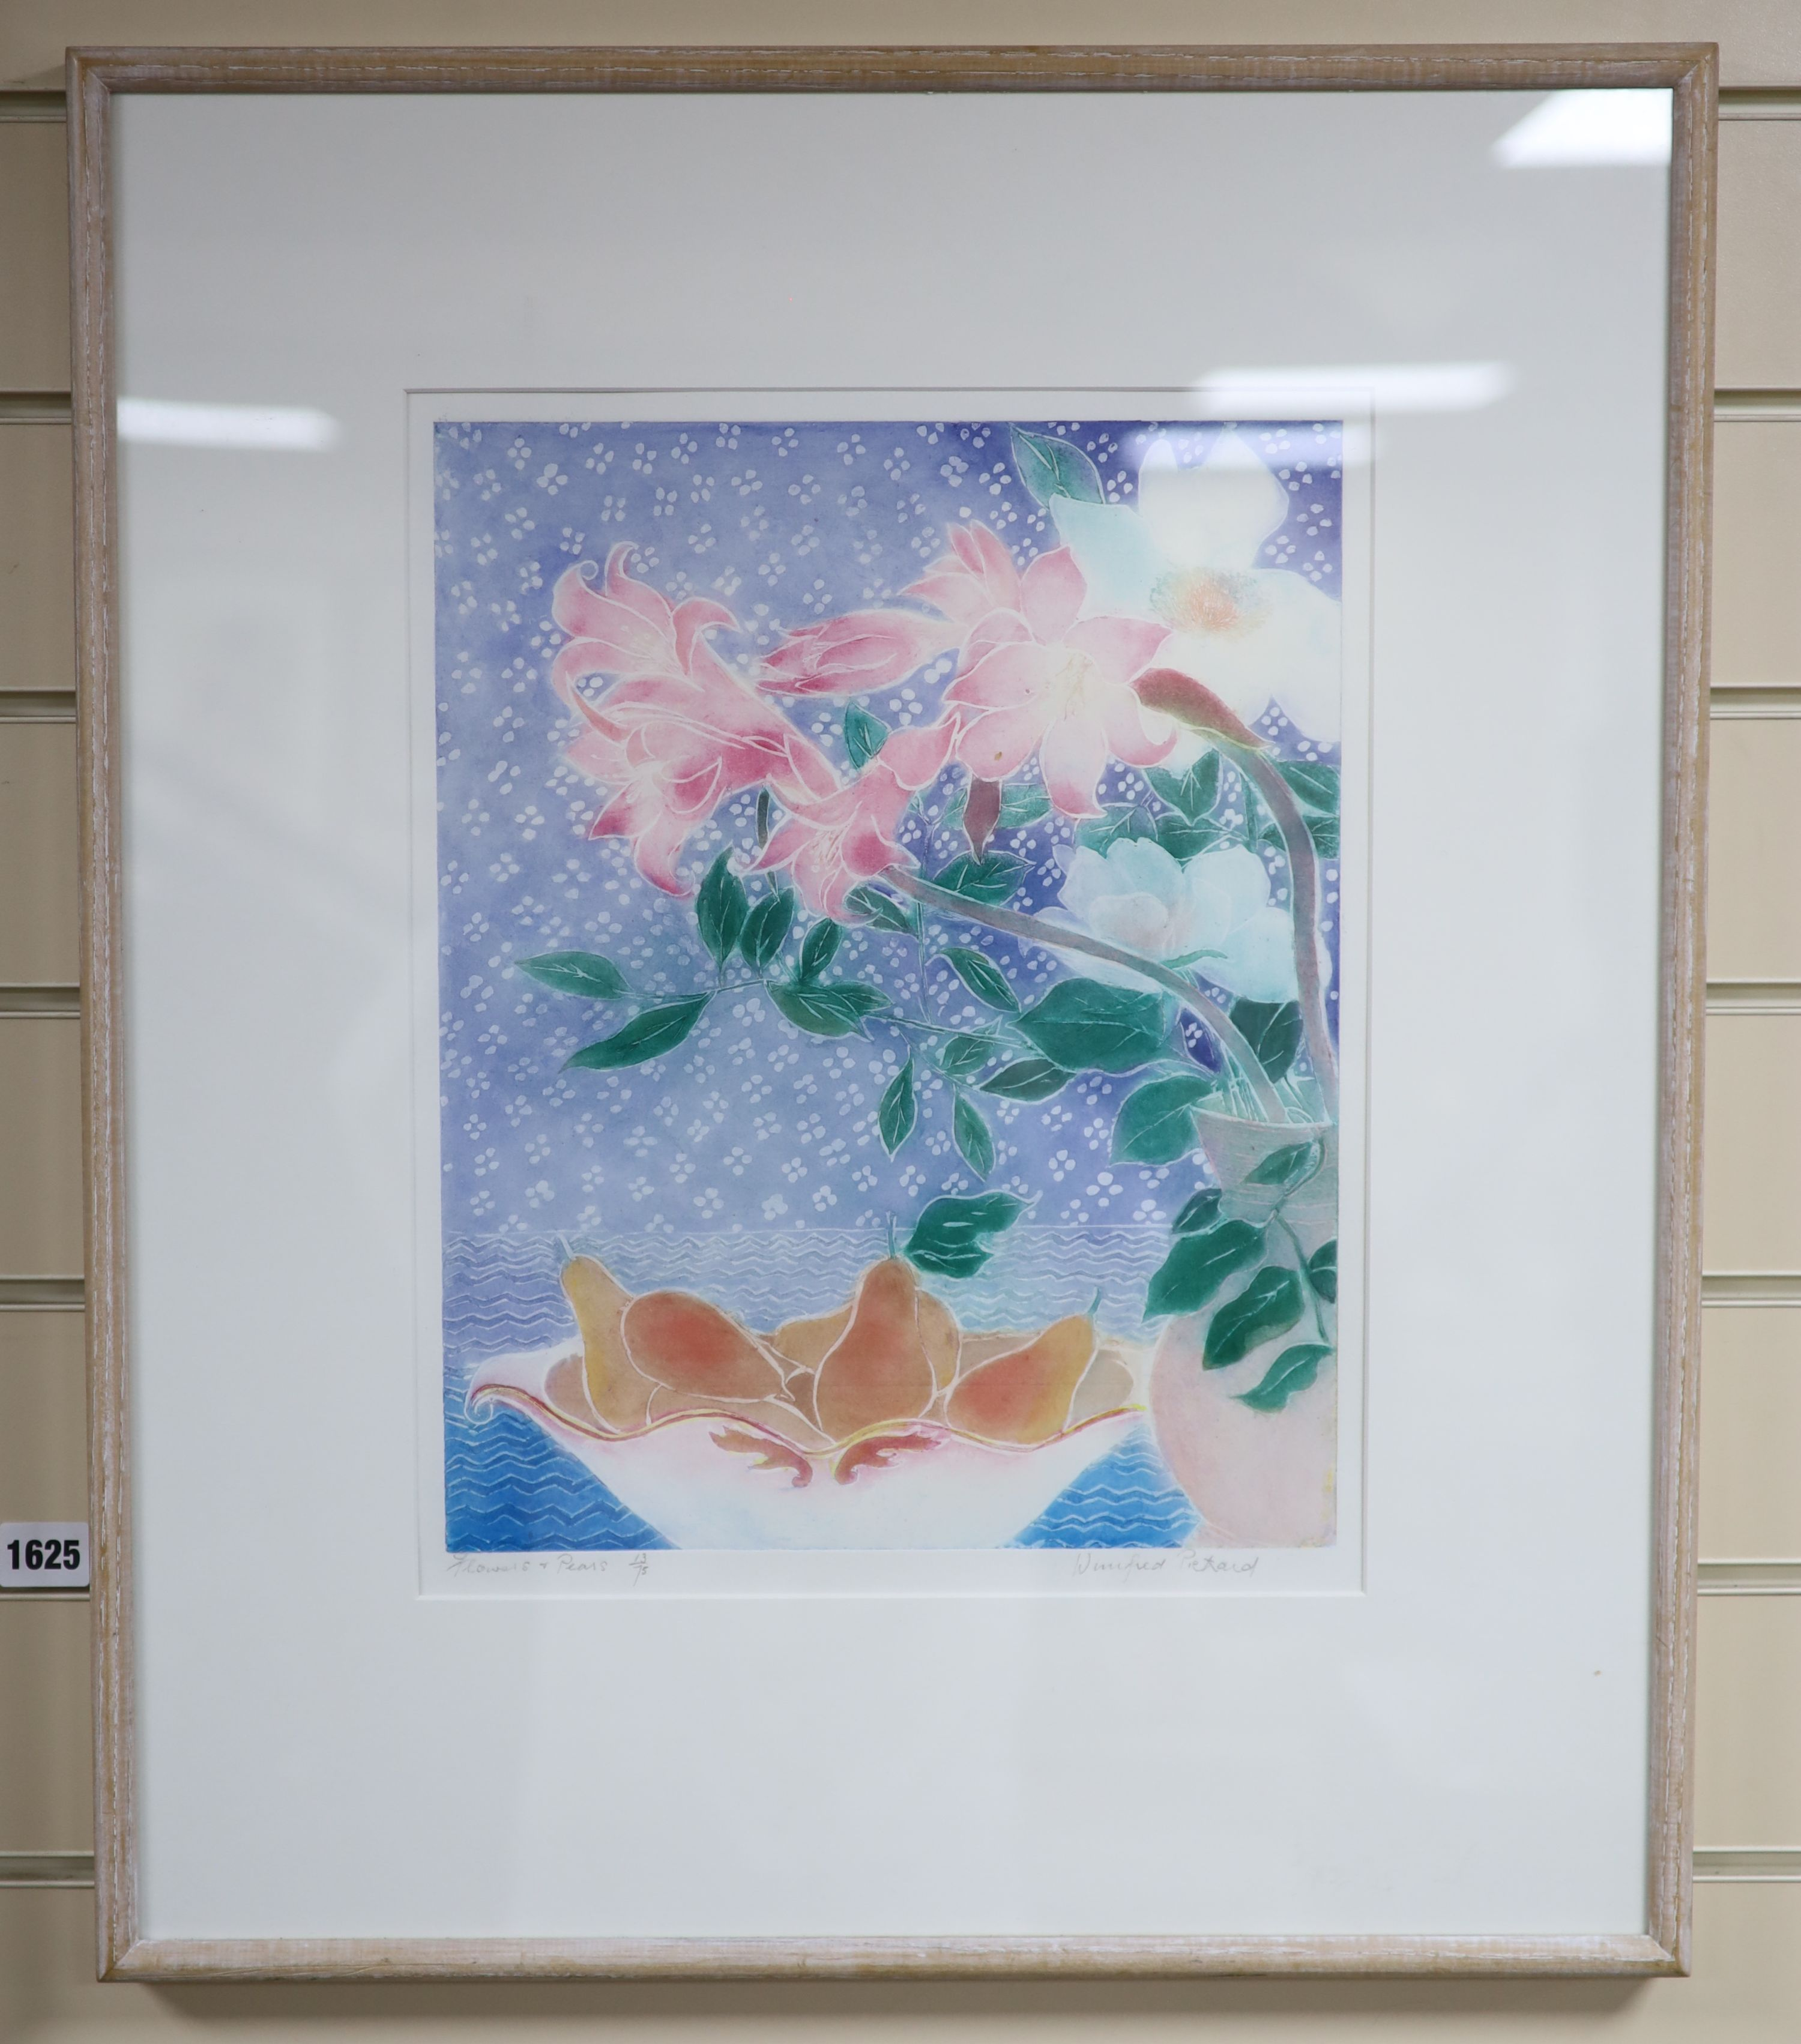 Winifred Pickard (1908-1996), limited edition print, Flowers and Pears, signed in pencil, 13/75, - Image 2 of 2